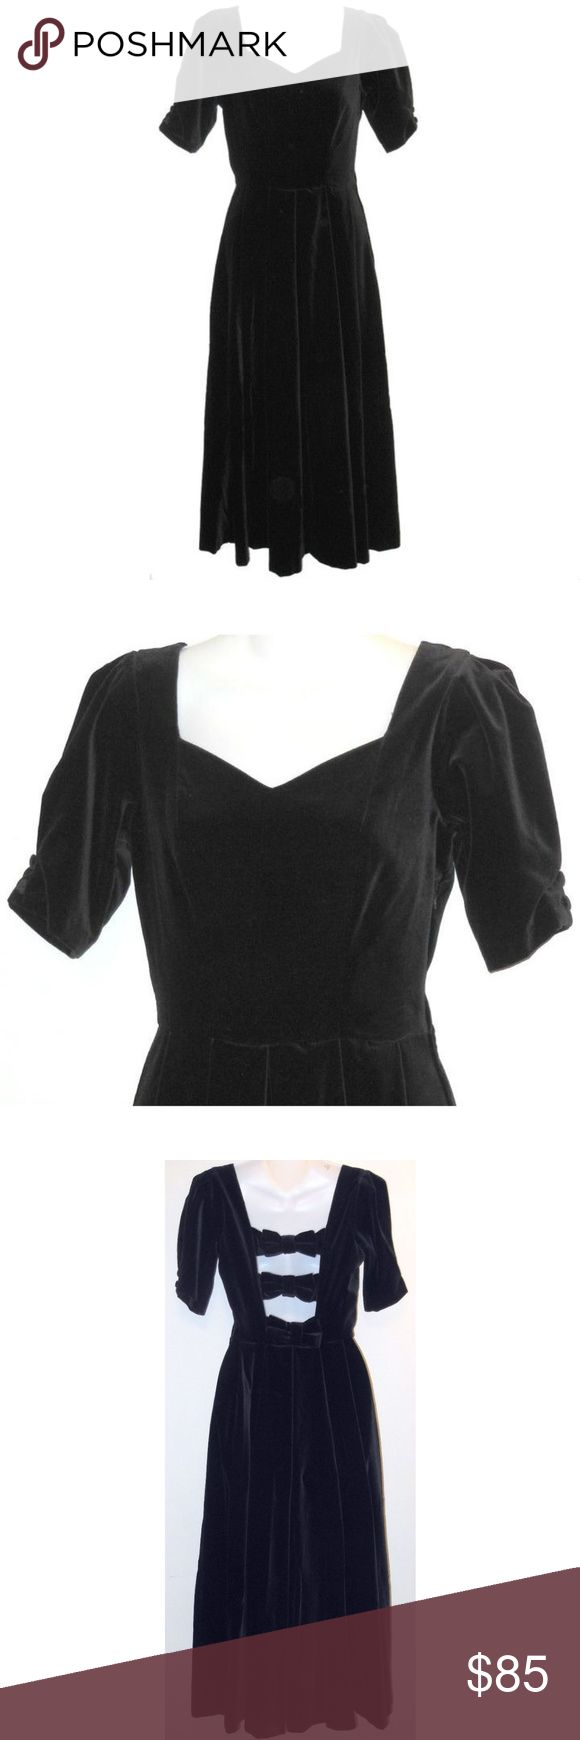 """Vintage Laura Ashley Velvet Dress Elegant vintage dress from Laura Ashley in black velvet, perfect for holiday parties. Sweetheart neckline, short sleeves and seamed waist. Cut-out back with bow trim, zips under the arm, lined to the waist. Measurements: US Size 4 Bust 33"""" Waist 25"""" Hips 42"""" Length 49"""" shoulder to hem All Measurements Are Approximate Measurements Taken Flat & Unstretched Laura Ashley Dresses Midi"""